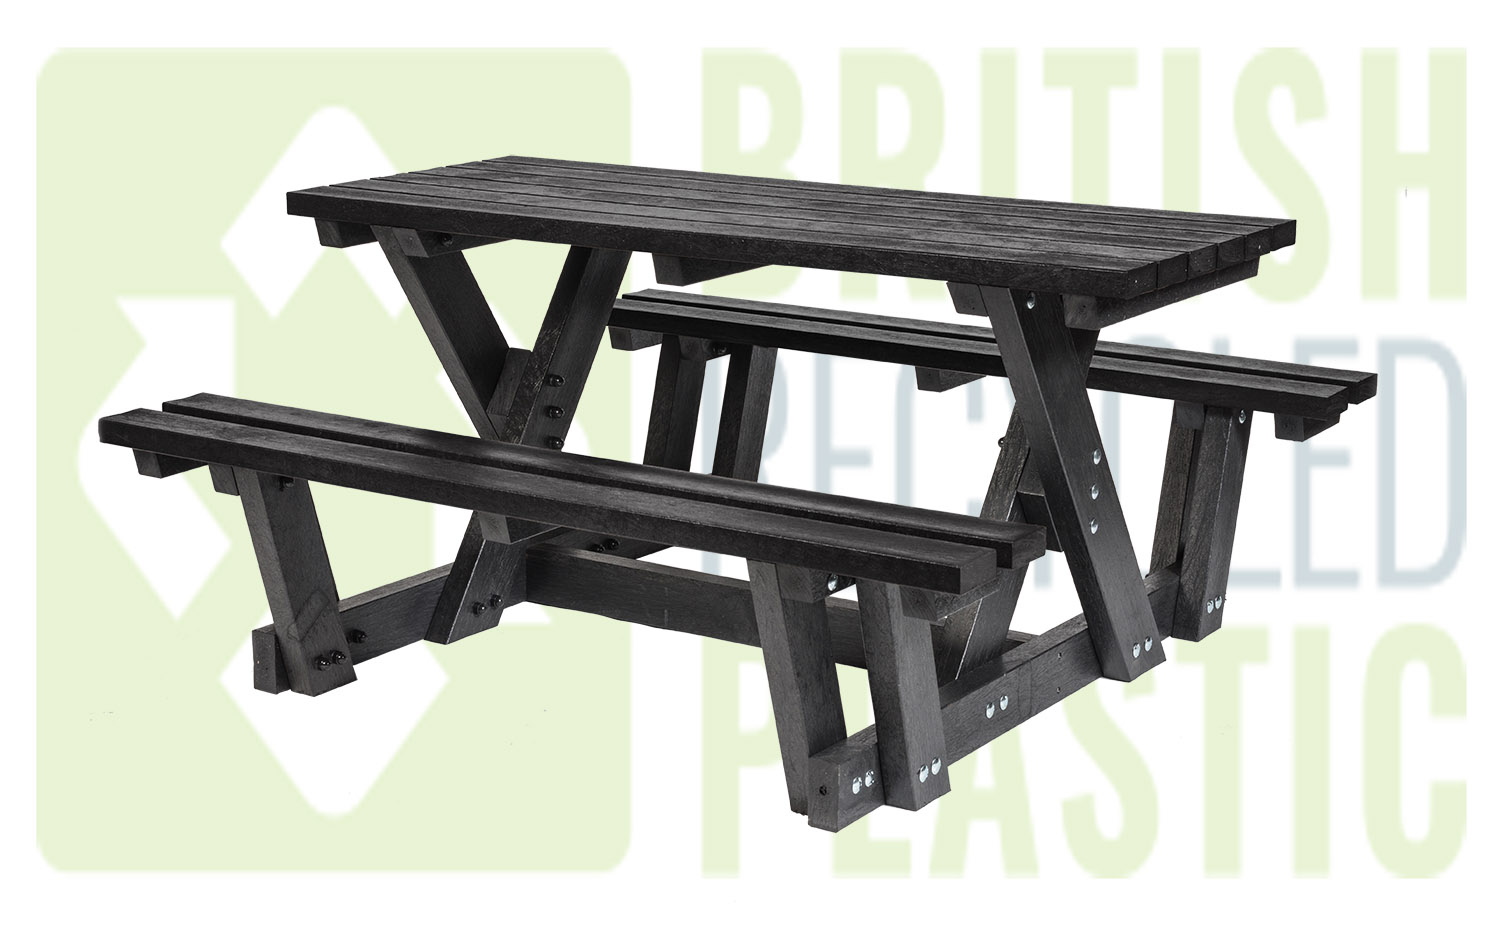 The Batley picnic table is popular with users who have limited mobility as it is easier to access than standard A-frame picnic tables